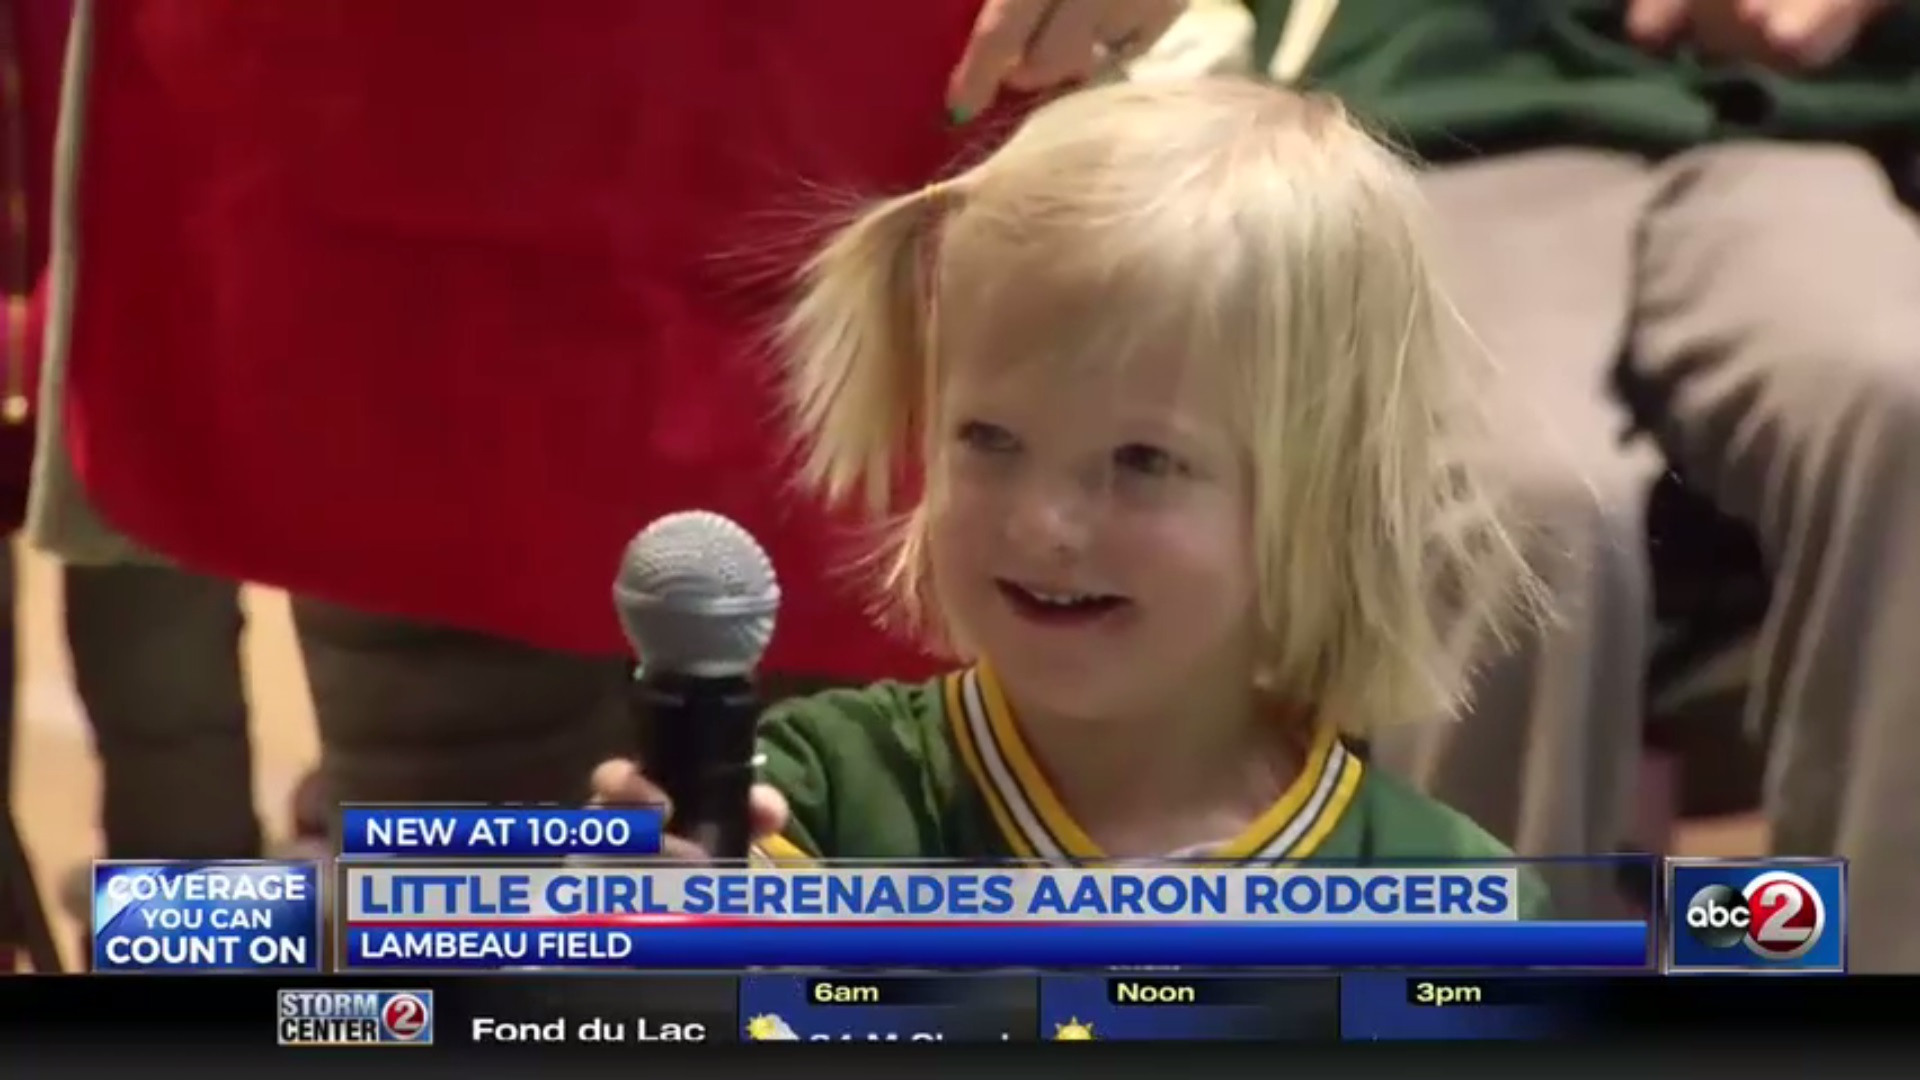 Little Girl Serenades Aaron Rodgers